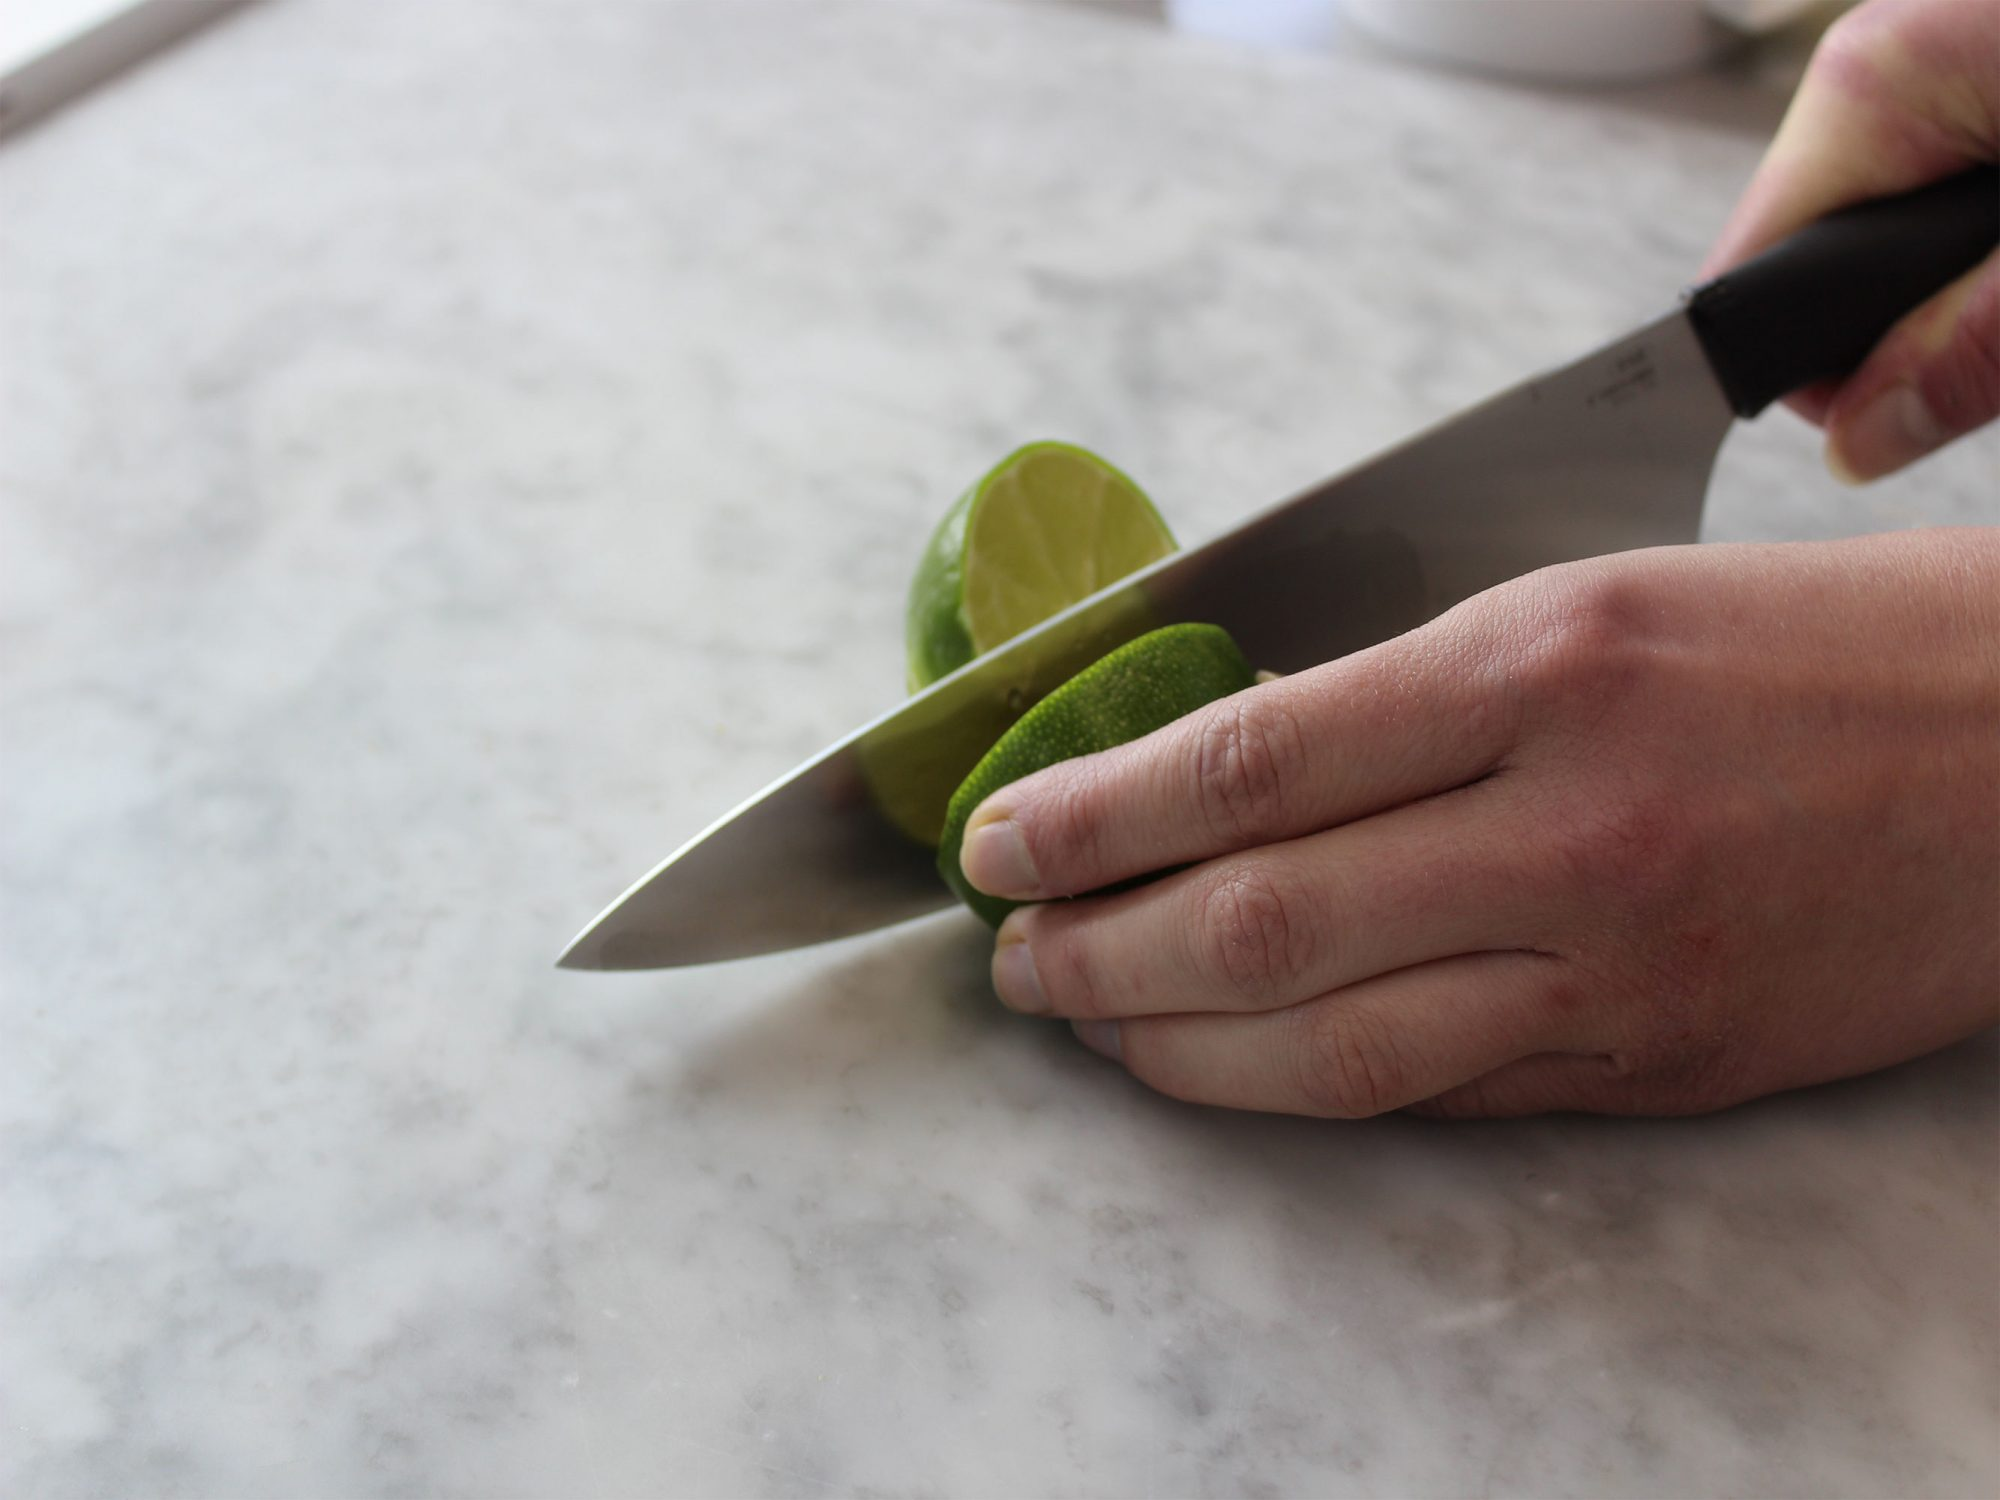 Lime sliced with knife on countertop